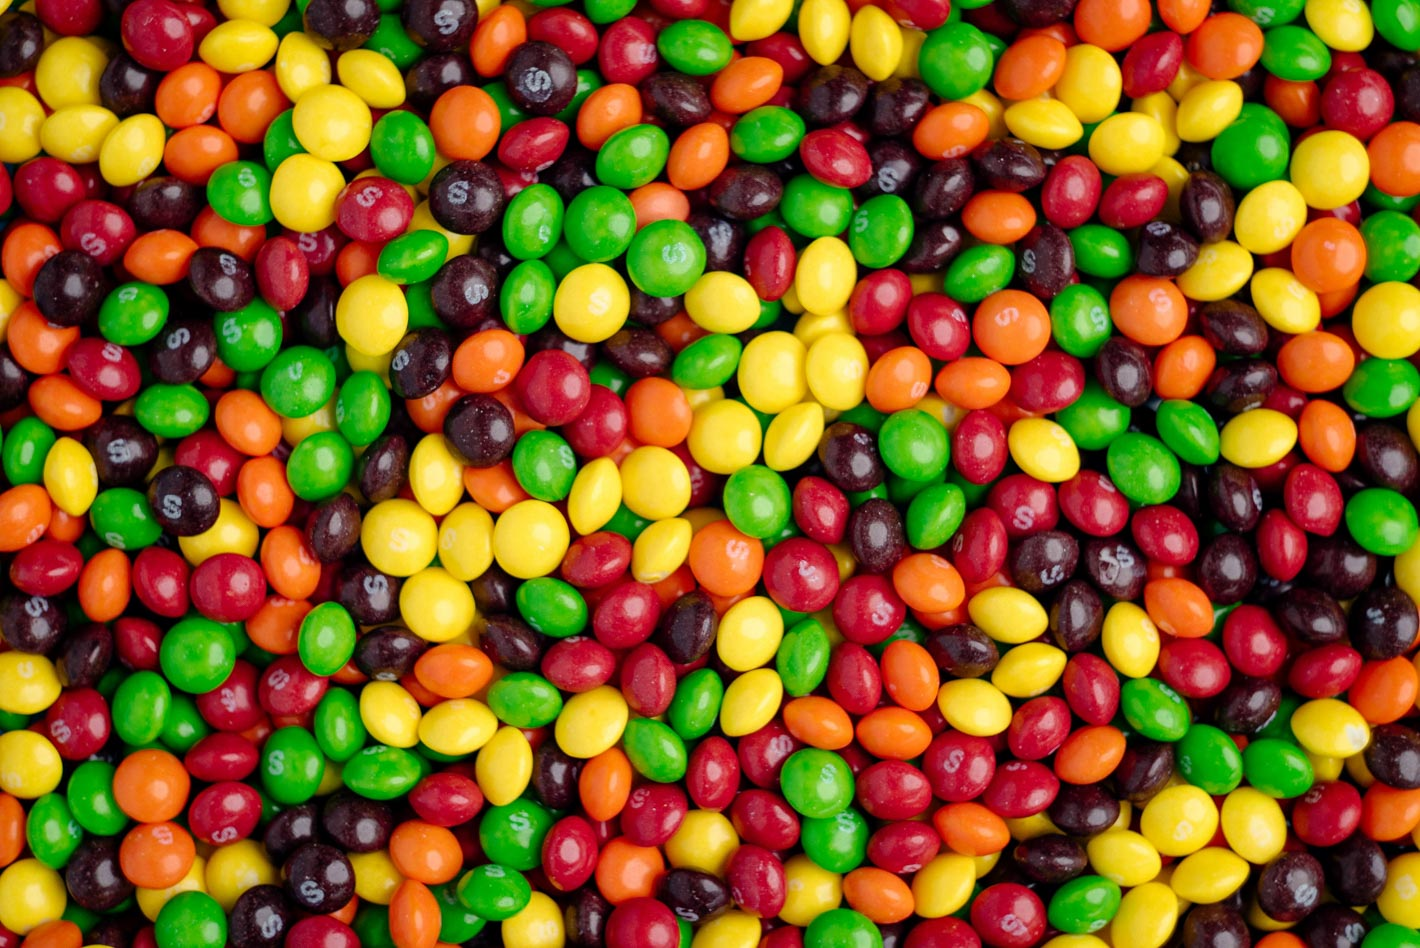 A full image of skillets candy